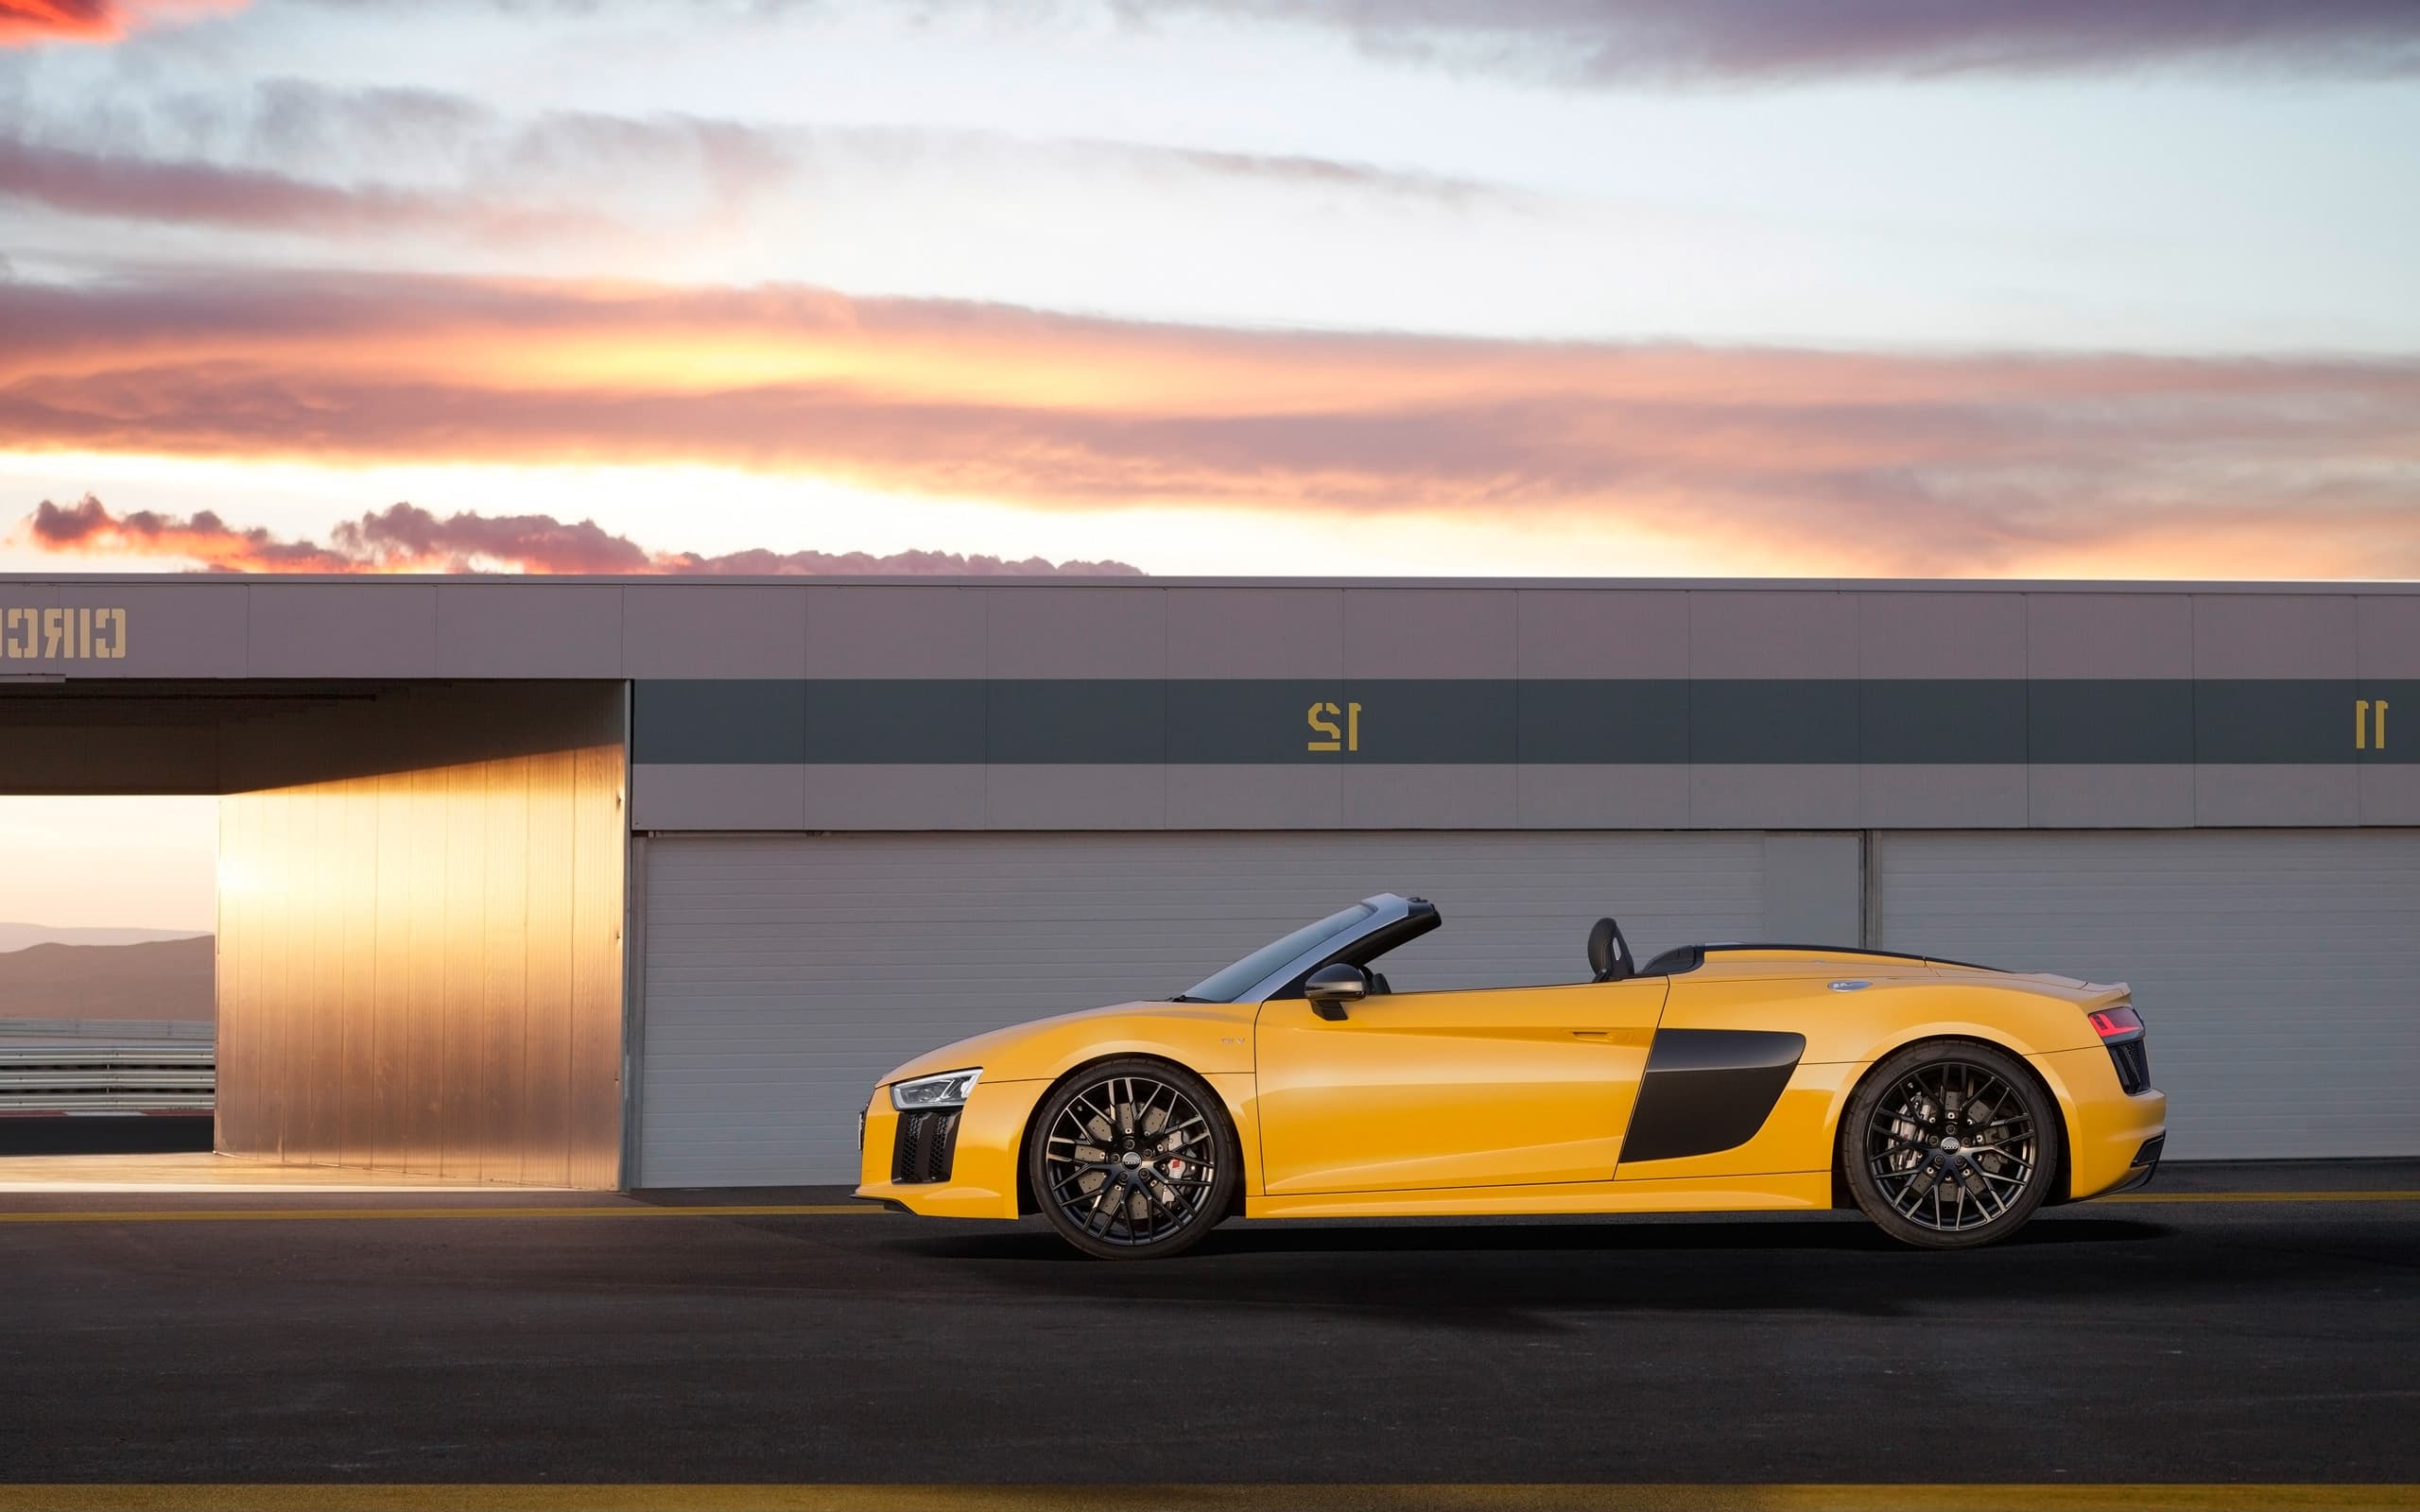 clouds 2017 Audi R8 Spyder V10 HD wallpaper for PC